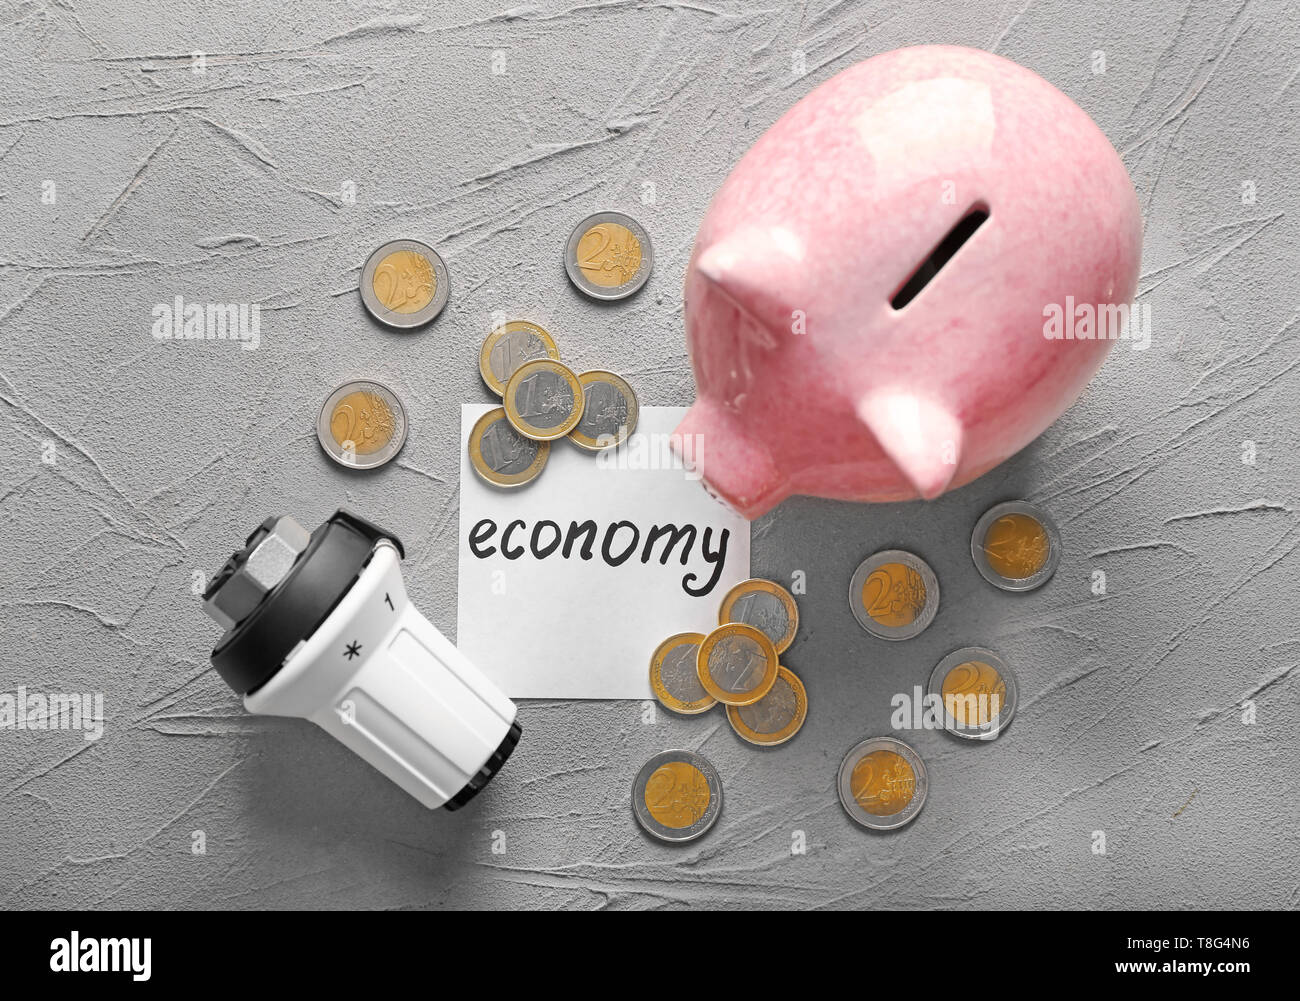 Piggy bank with coins and thermostat on grey background. Heating saving concept - Stock Image